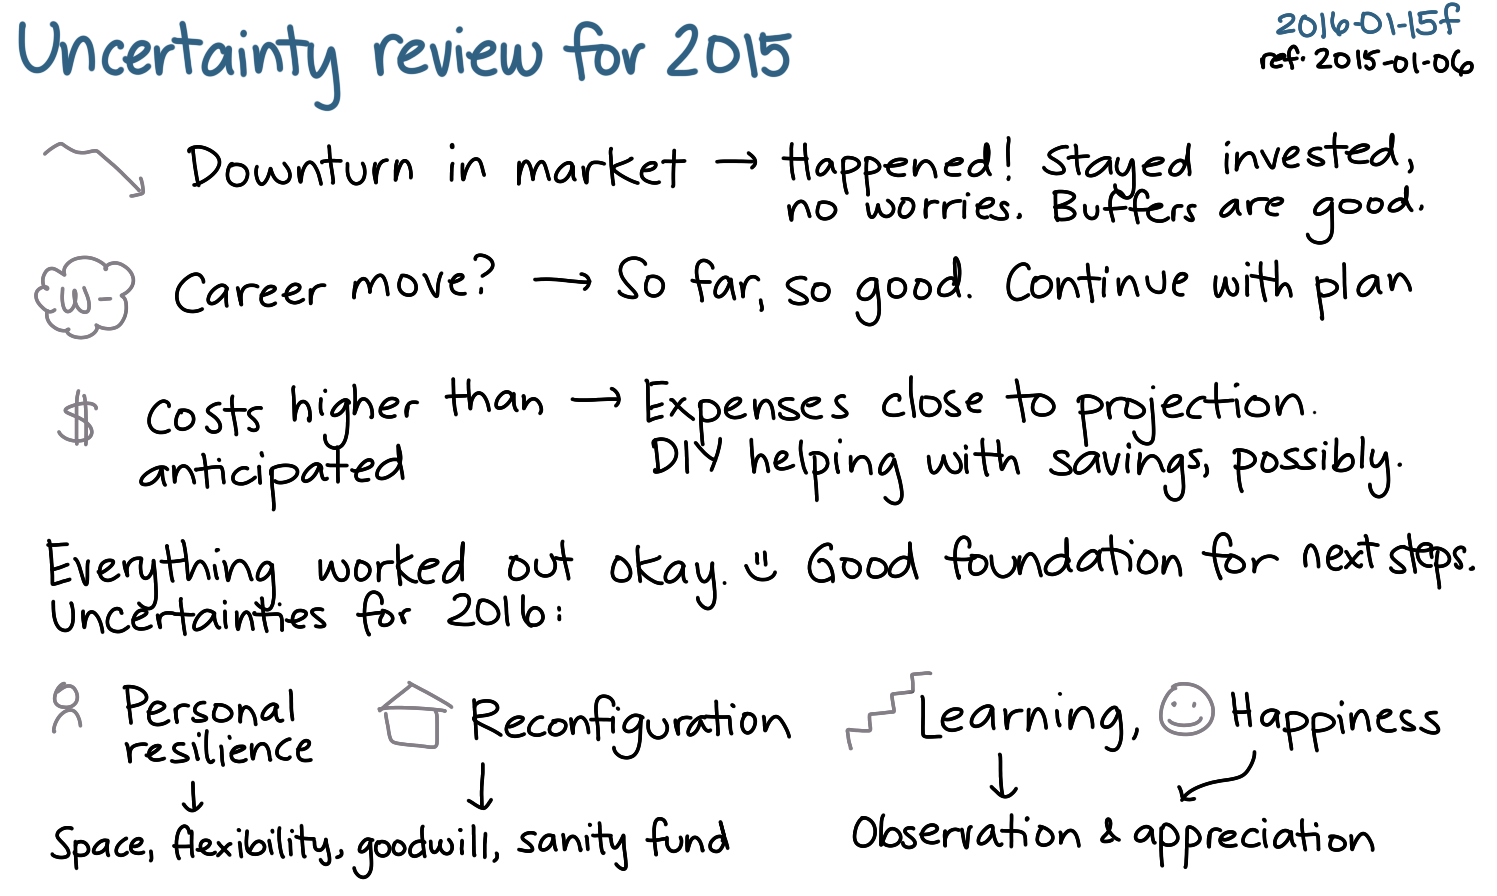 2016-01-15f Uncertainty review for 2015 -- index card #uncertainty #review.png